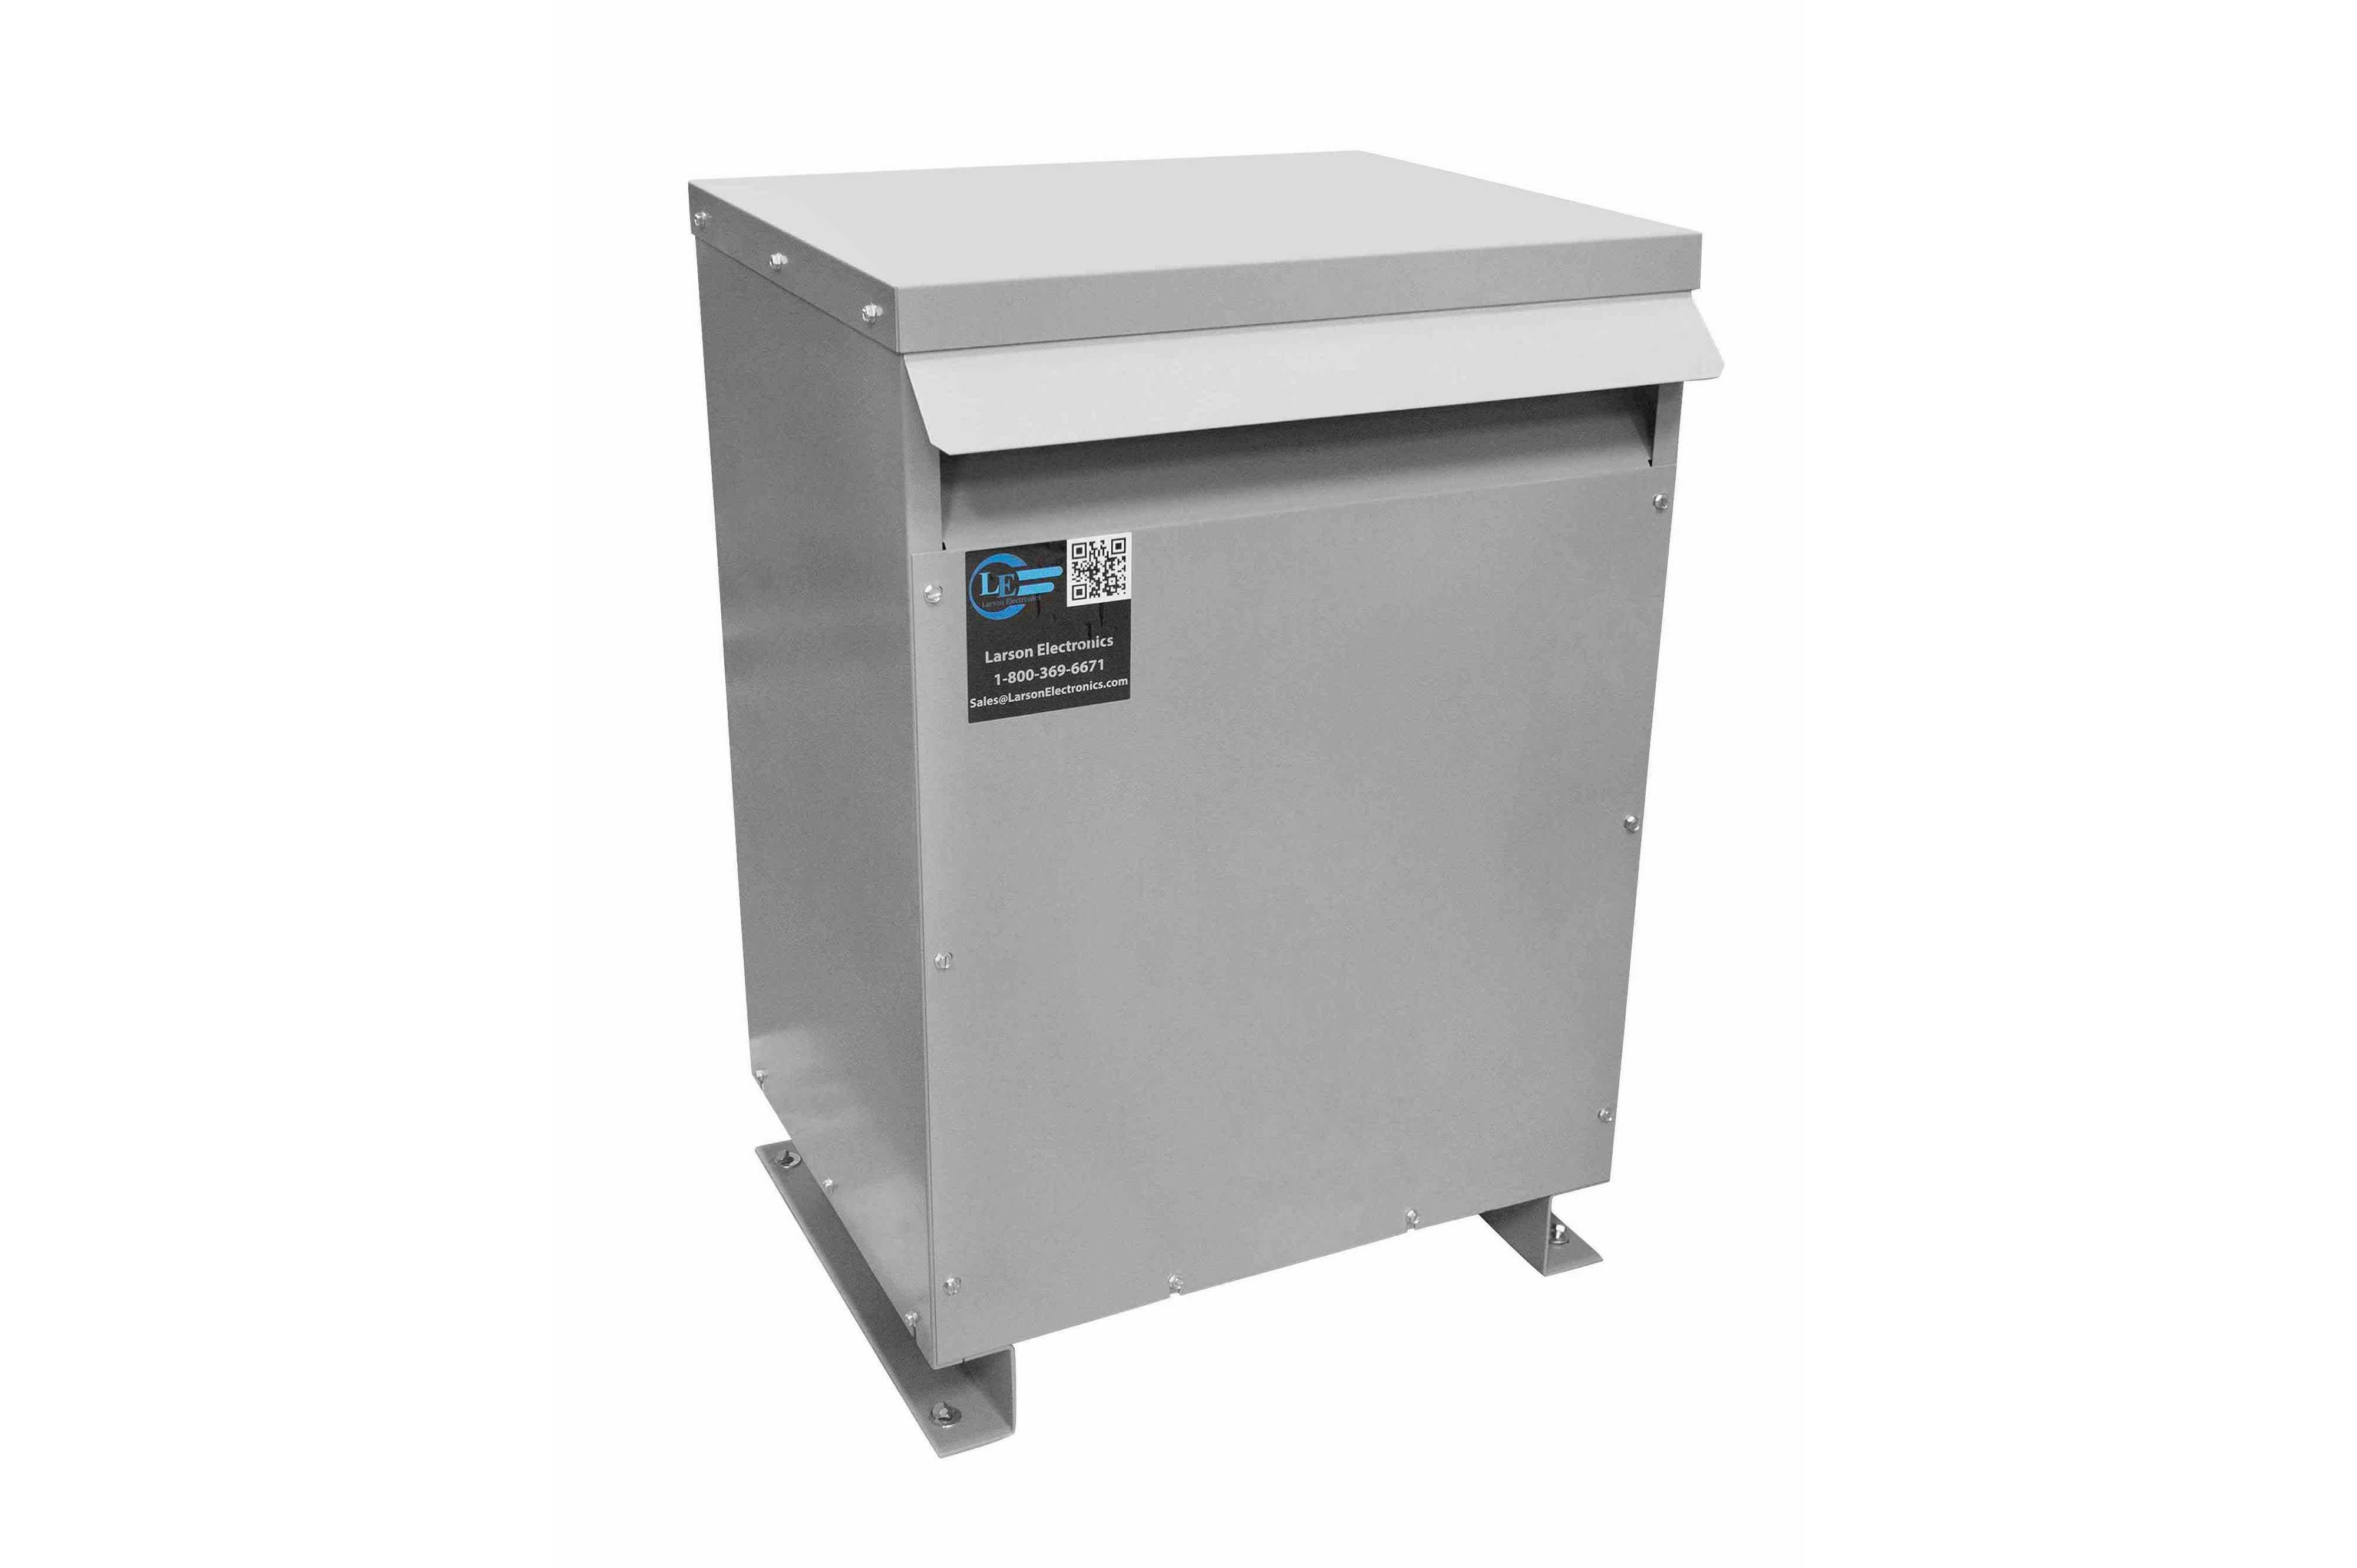 38 kVA 3PH Isolation Transformer, 380V Wye Primary, 480V Delta Secondary, N3R, Ventilated, 60 Hz